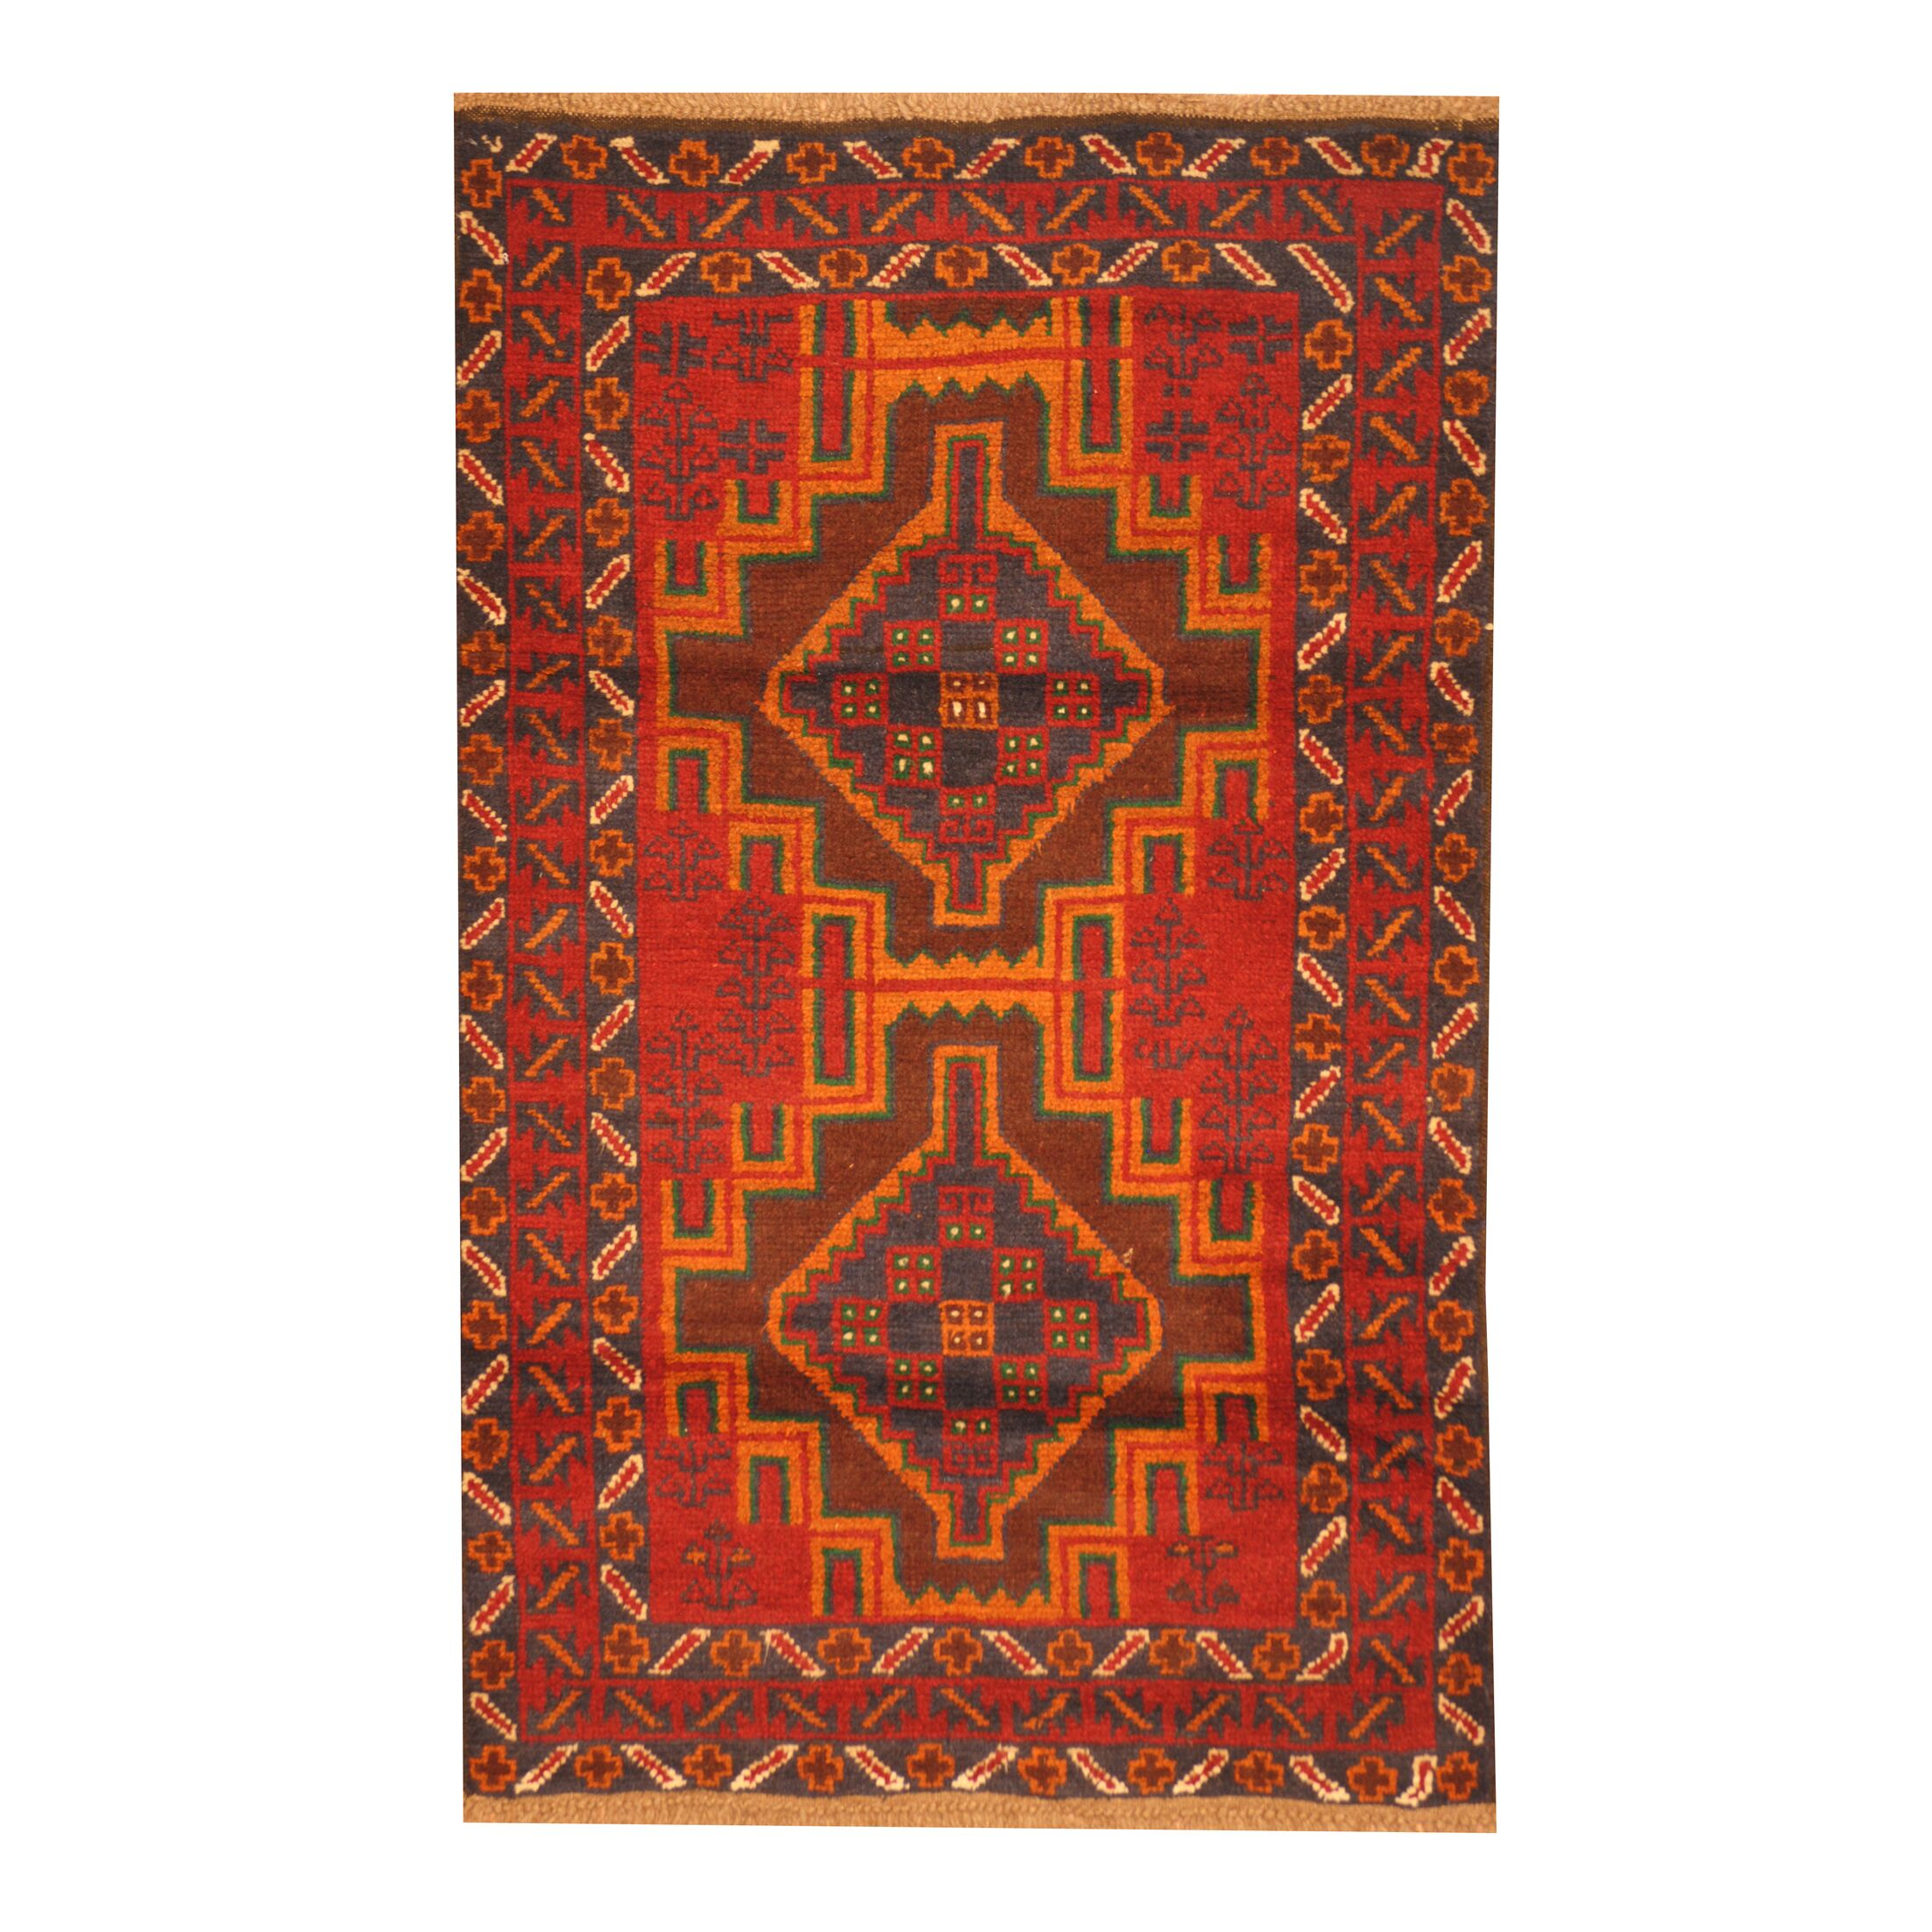 Prentice Hand-Knotted Red/Orange Area Rug